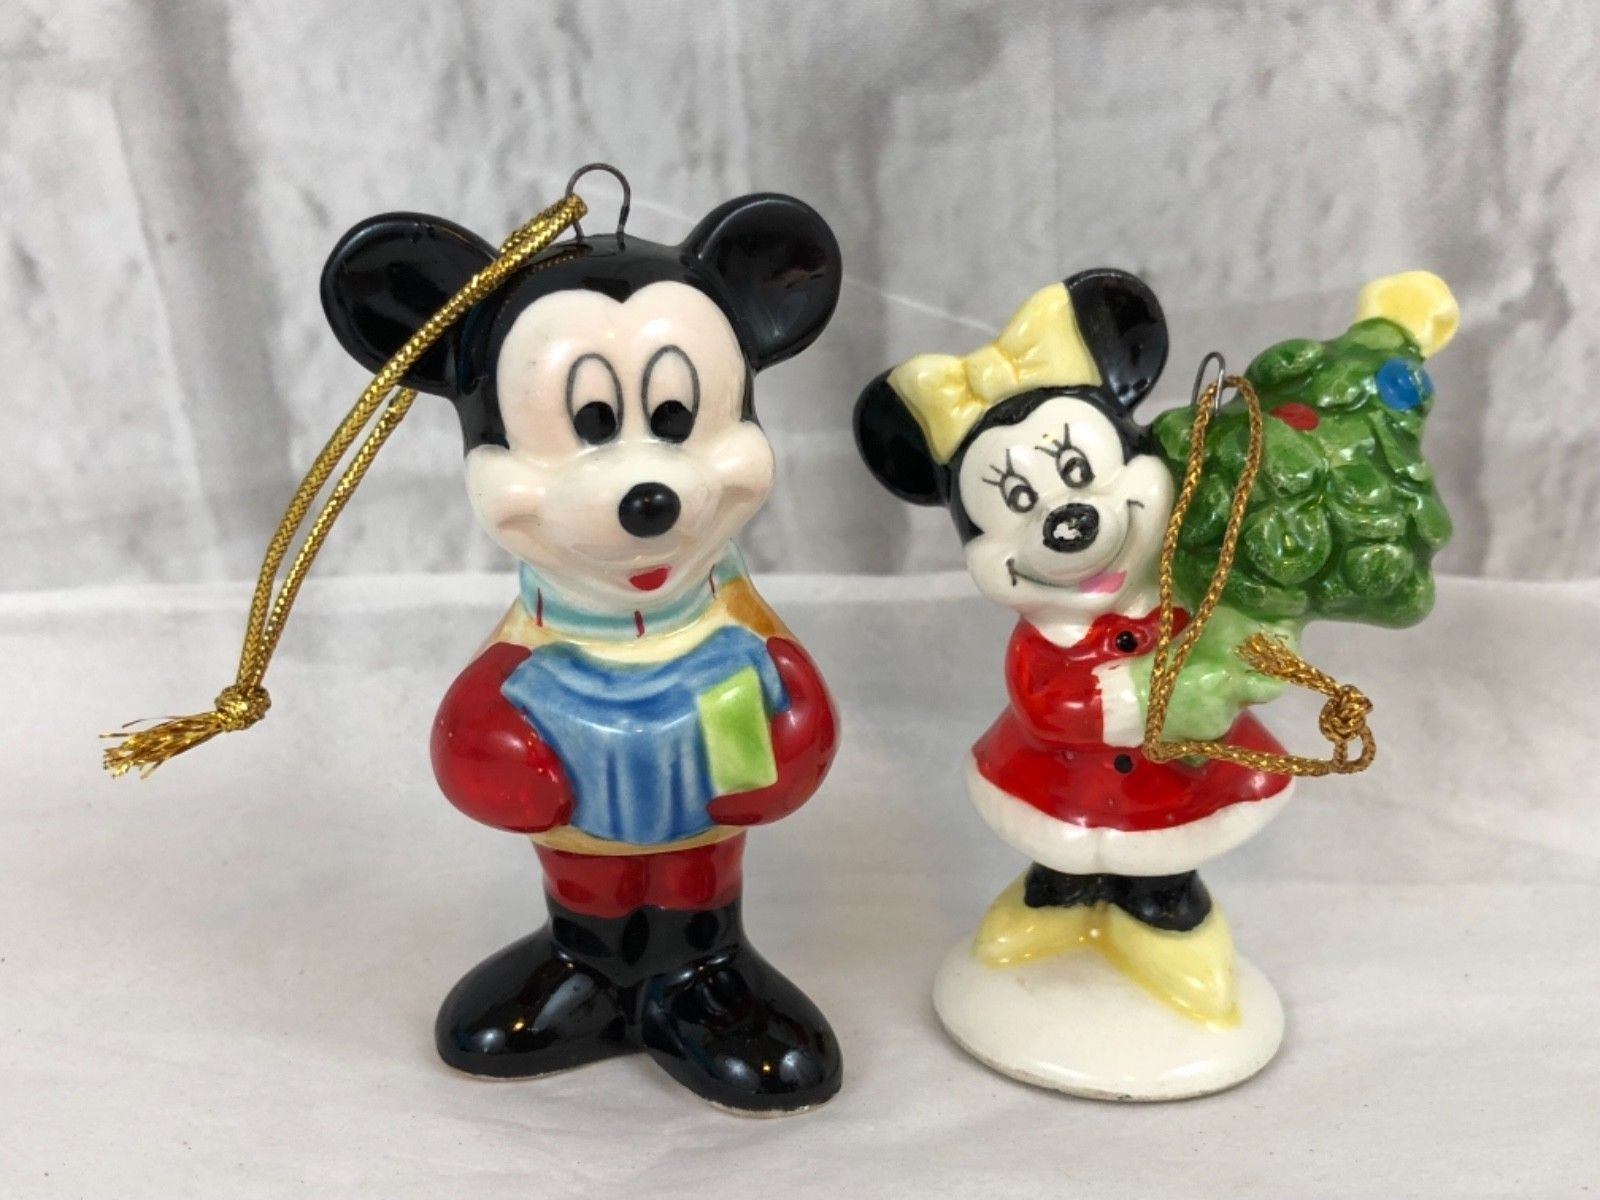 Vintage Schmid Mickey Mouse And Minnie Mouse Ceramic Christmas Ornaments Christmas Ornaments Christmas Decorations Ornaments Ornament Decor